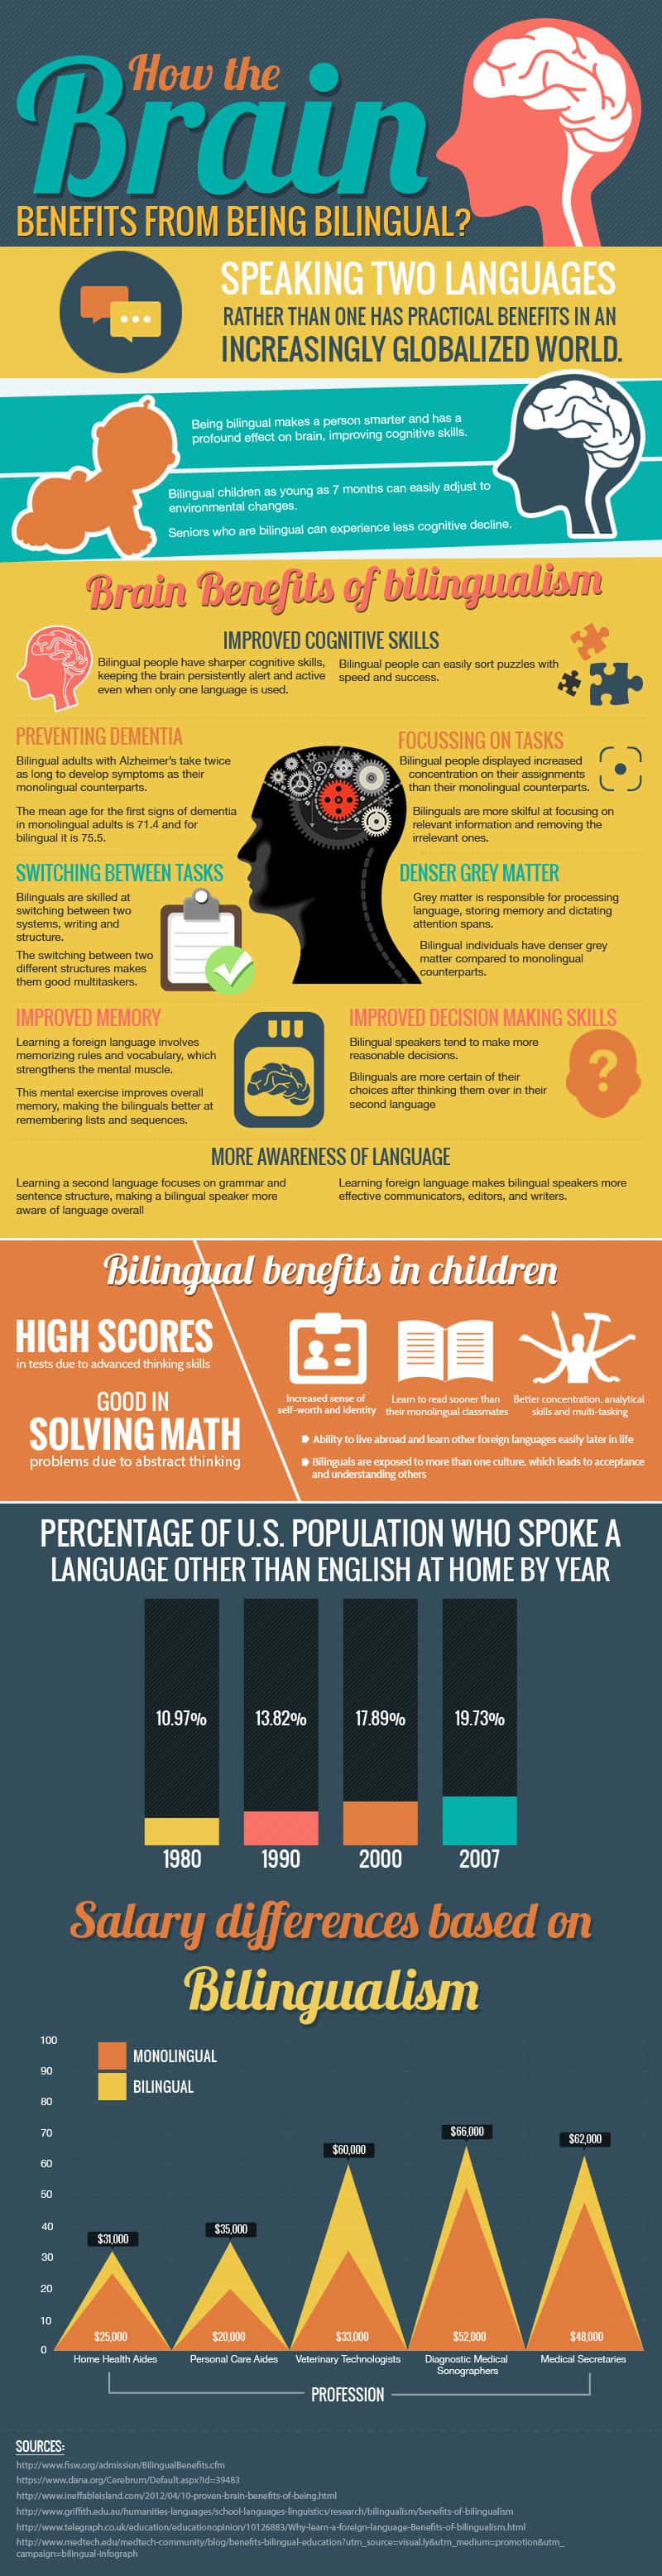 how-the-brain-benefits-from-being-bilingual-infographic-Languages-good for your brain